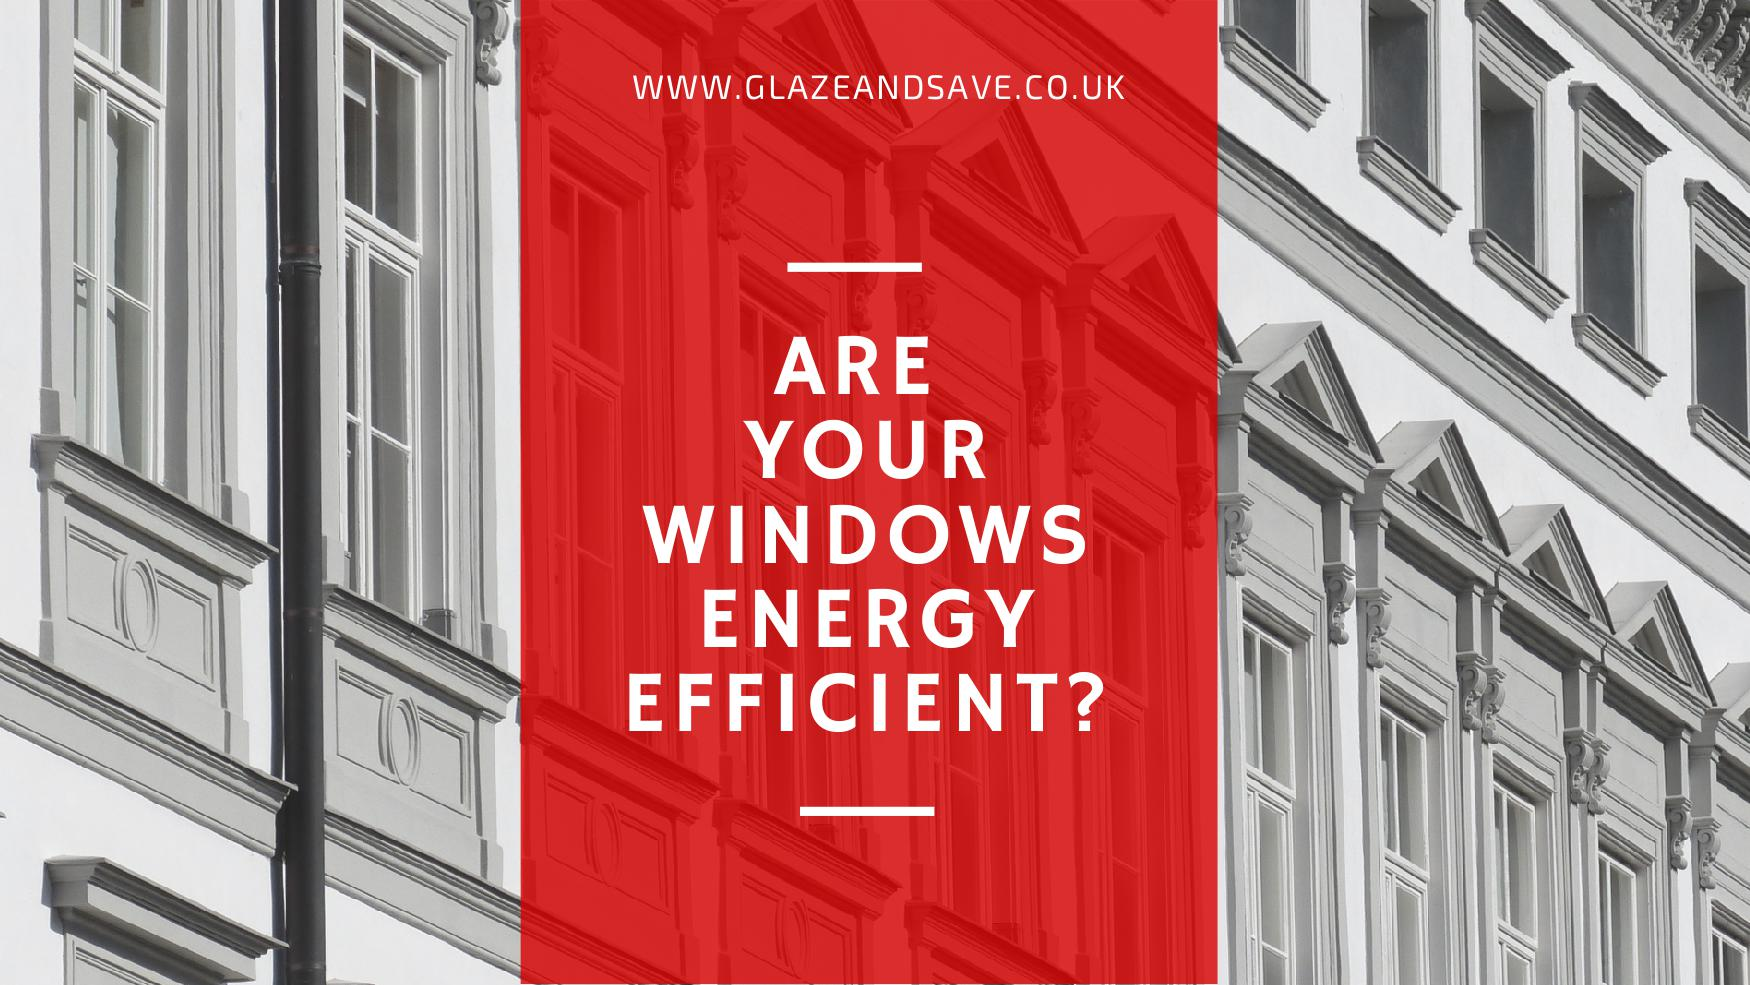 Are you windows energy efficient by glaze and save bespoke magnetic secondary glazing and innovative draught proofing